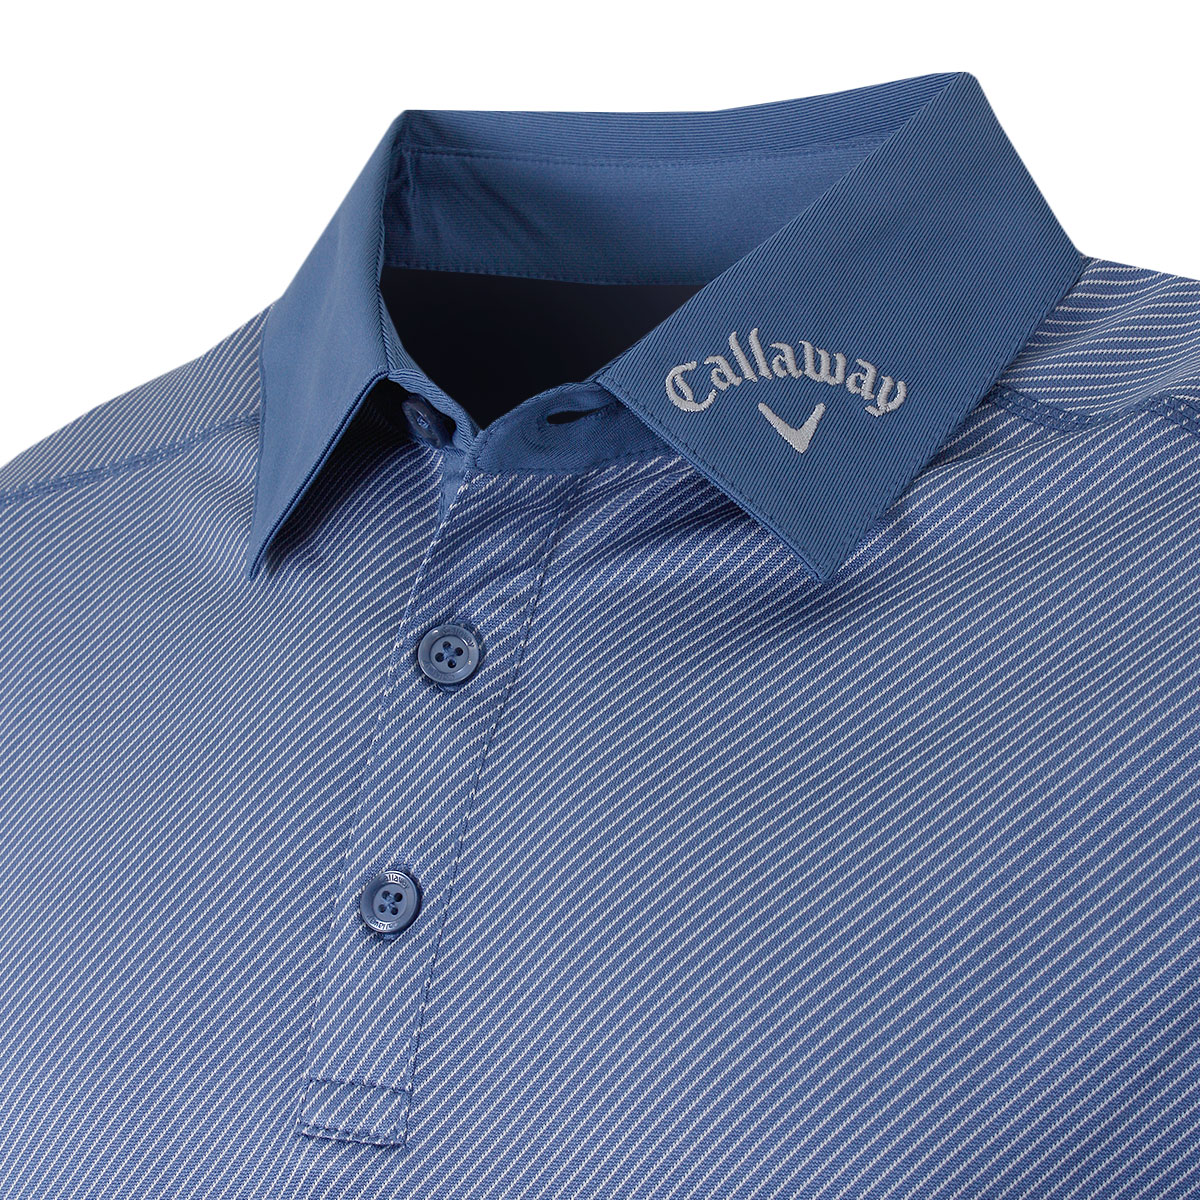 Callaway-Golf-Mens-Denim-Jacquard-Dri-Fit-Performance-Polo-Shirt-37-OFF-RRP thumbnail 25